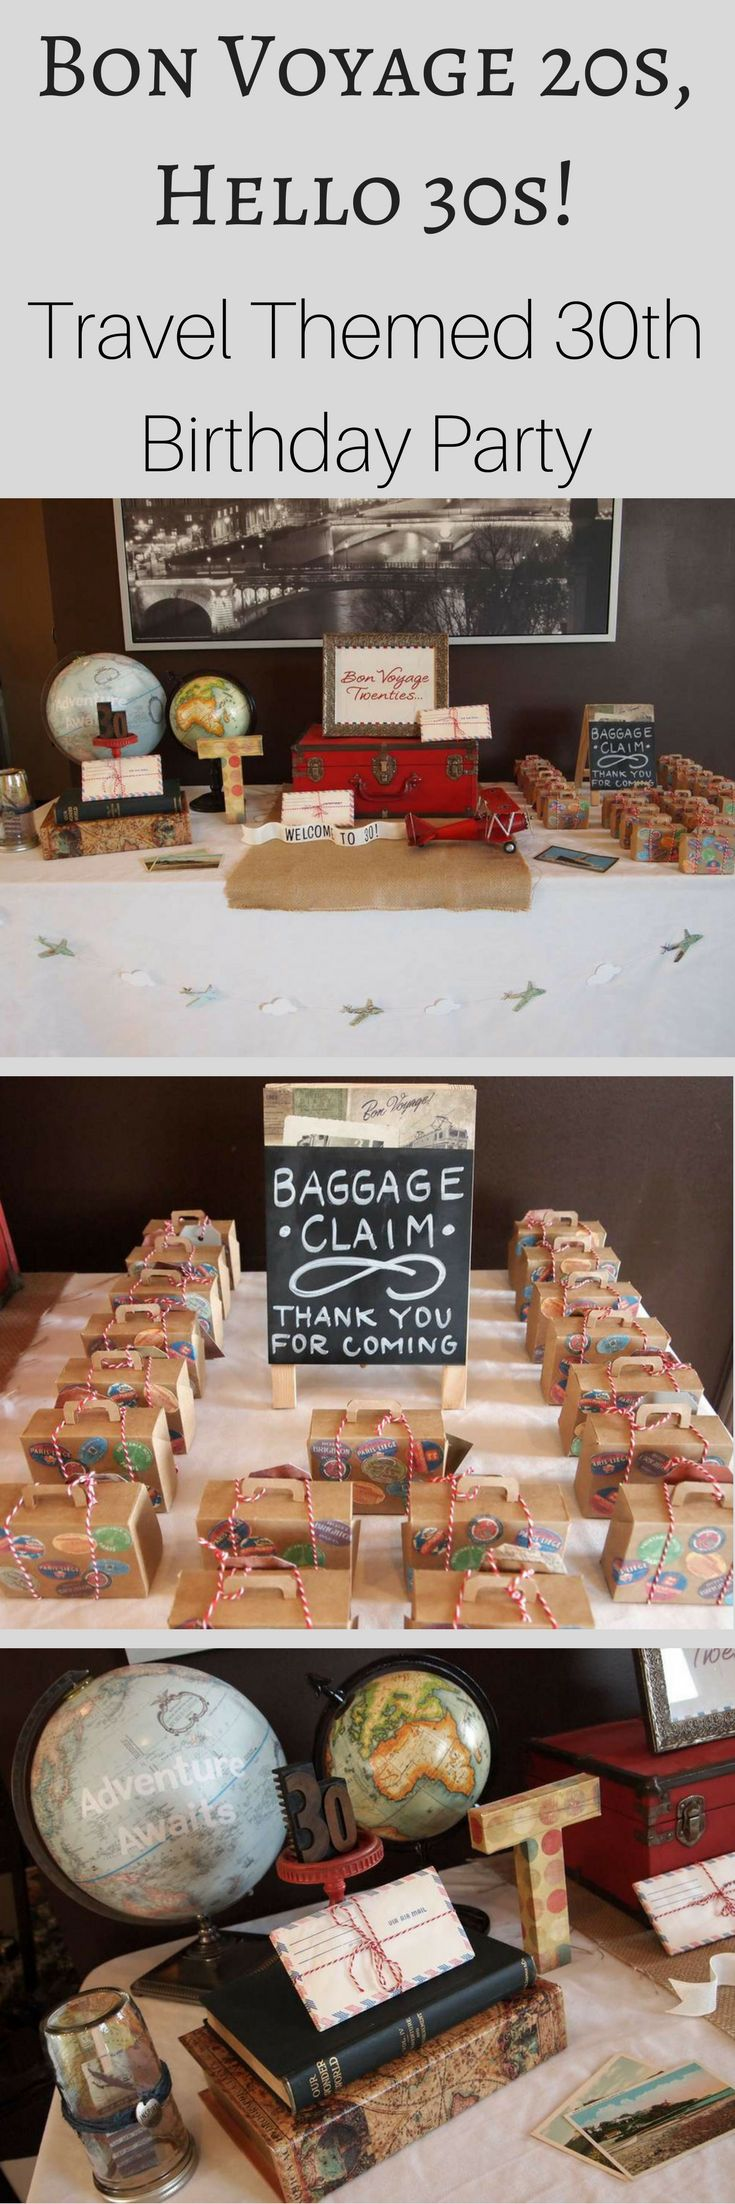 Creative 30th Birthday Party idea! Say bon voyage to your 20s and hello to your 30s with this travel themed birthday party. Full of fun ideas for travel themed party decor, party favors & more.